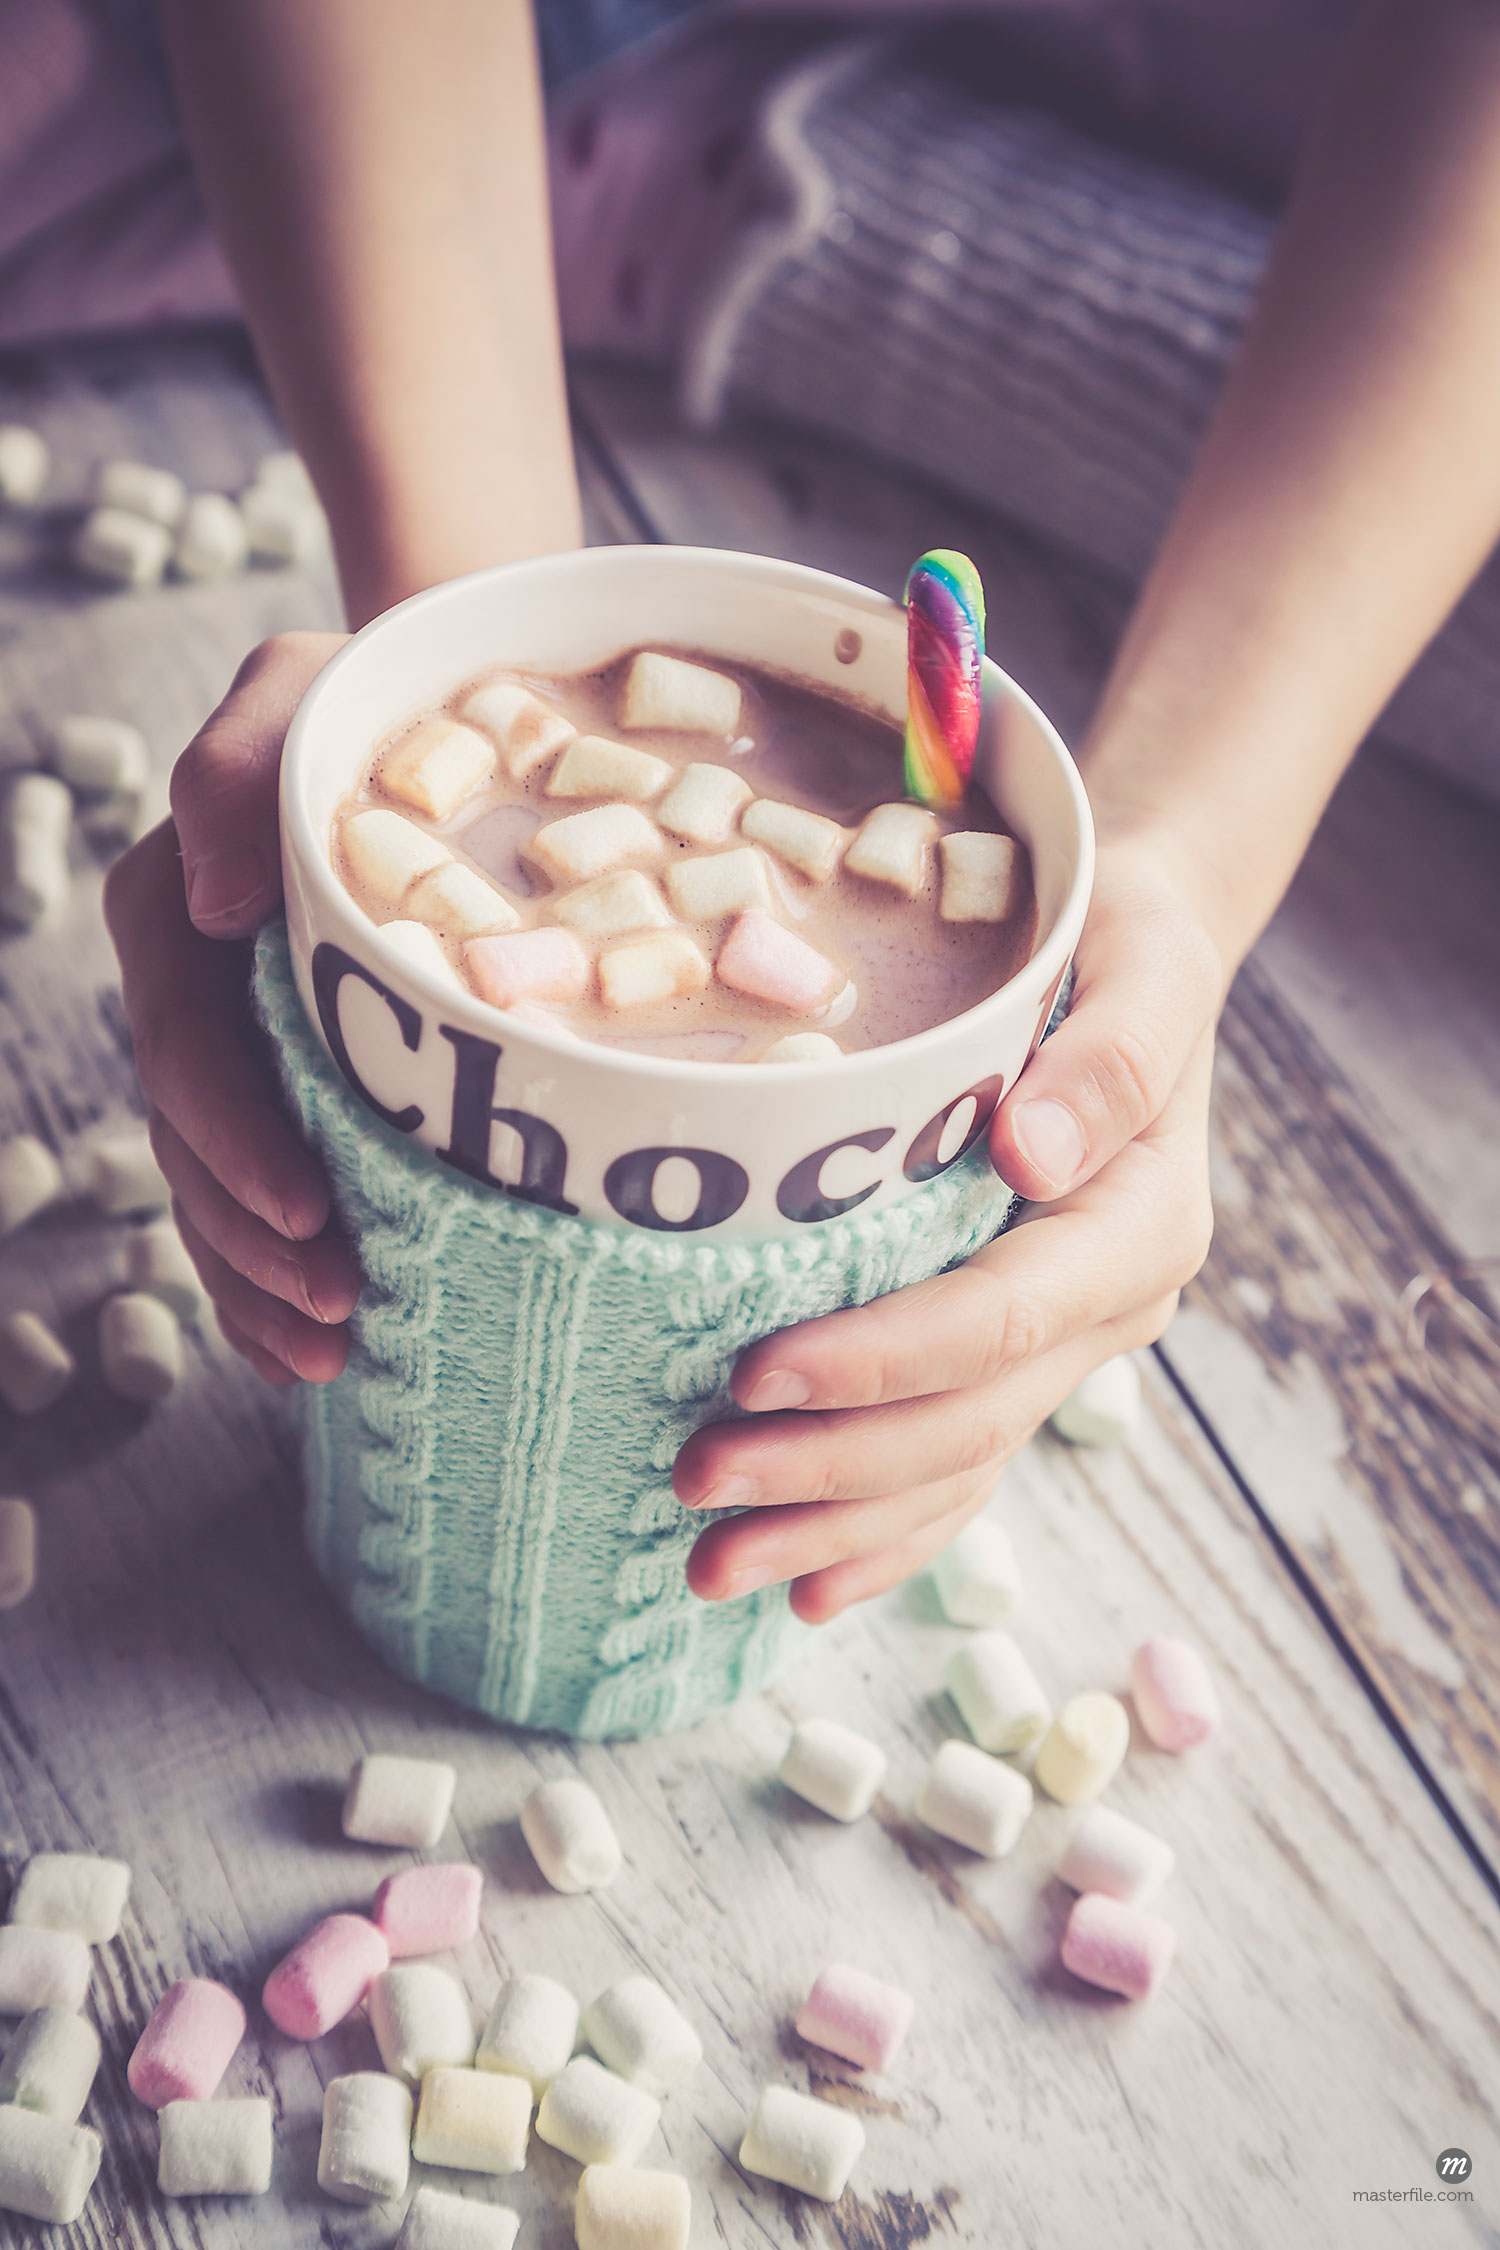 Hands cupping mug of hot chocolate and marshmallows, with knit mug warmer  © Masterfile